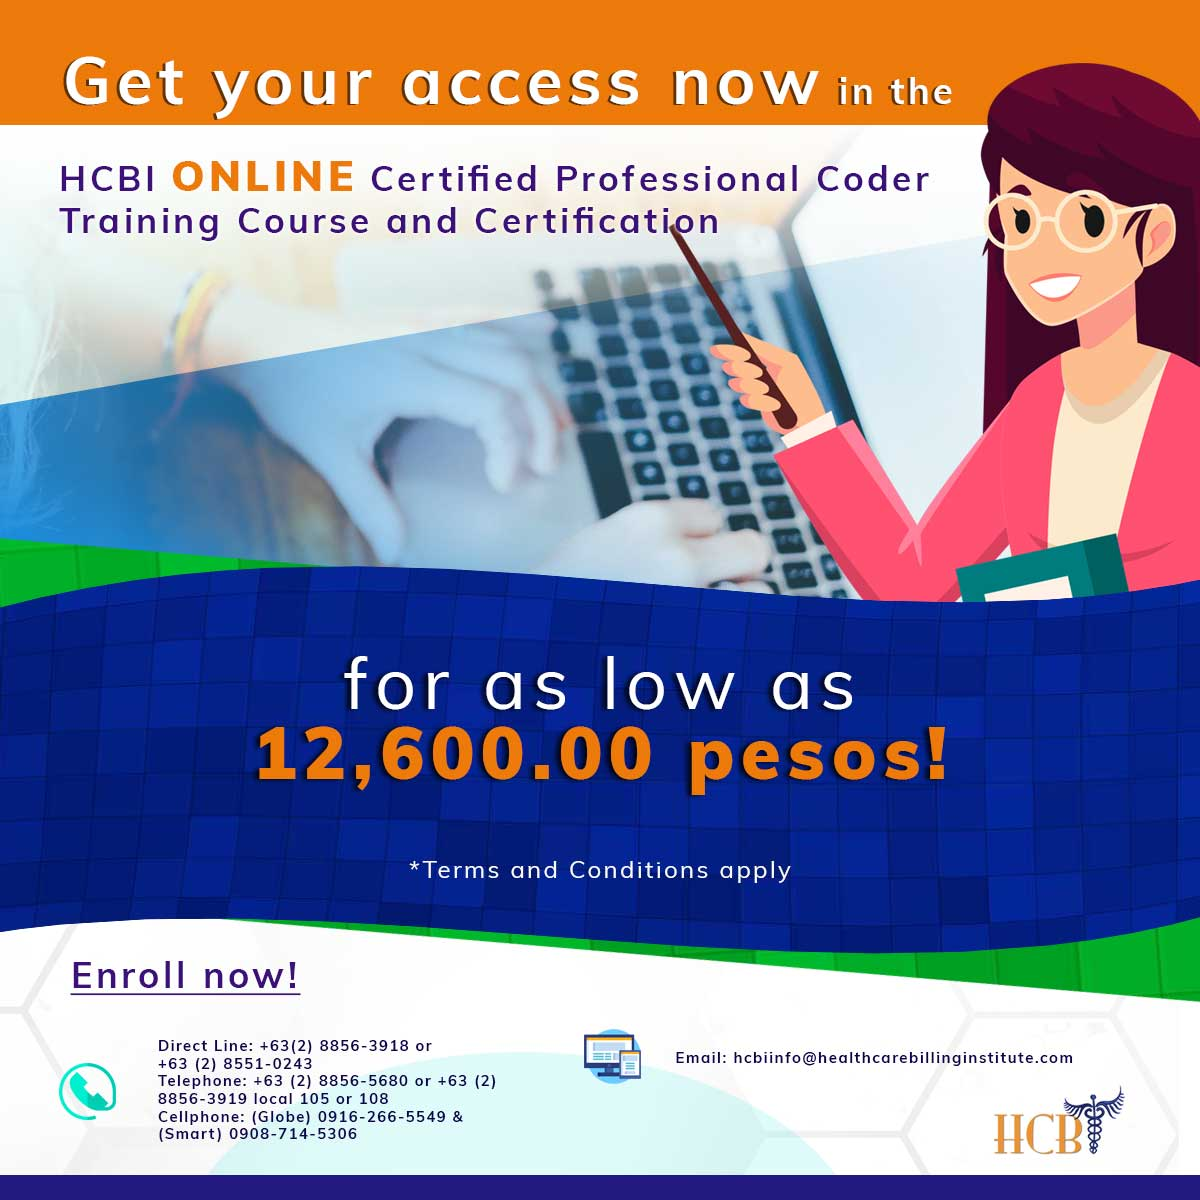 HCBI-ONLINE-Certified-Professional-Training-Course-and-Certification (1), hcbi